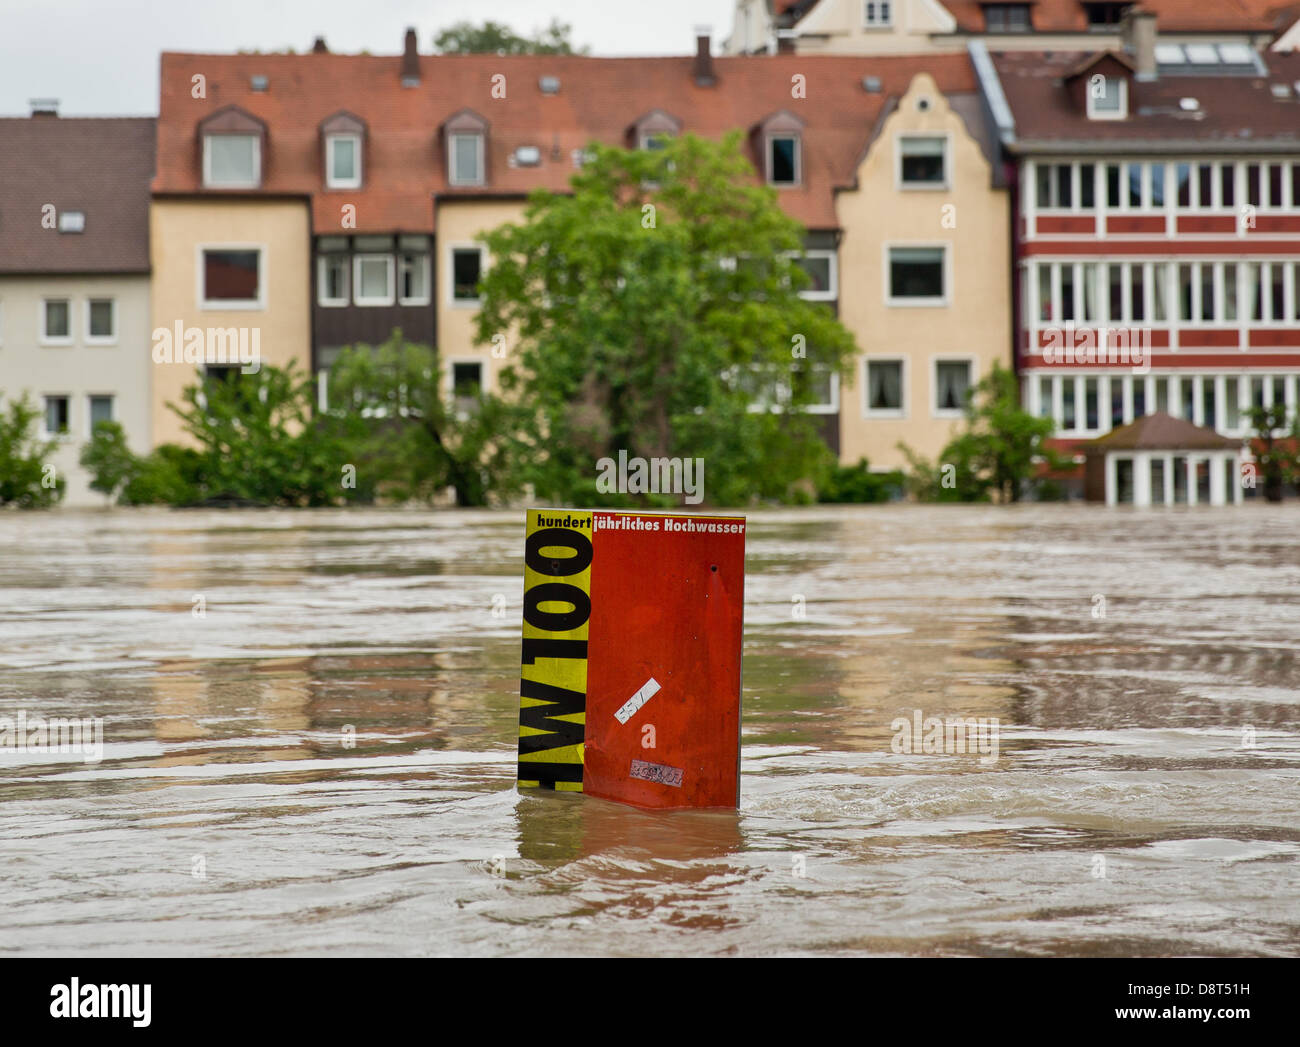 Regensburg, Germany. 4th June 2013. The flooded Danube is pictured with the flood of the century mark in Regensburg,Germany, - Stock Image